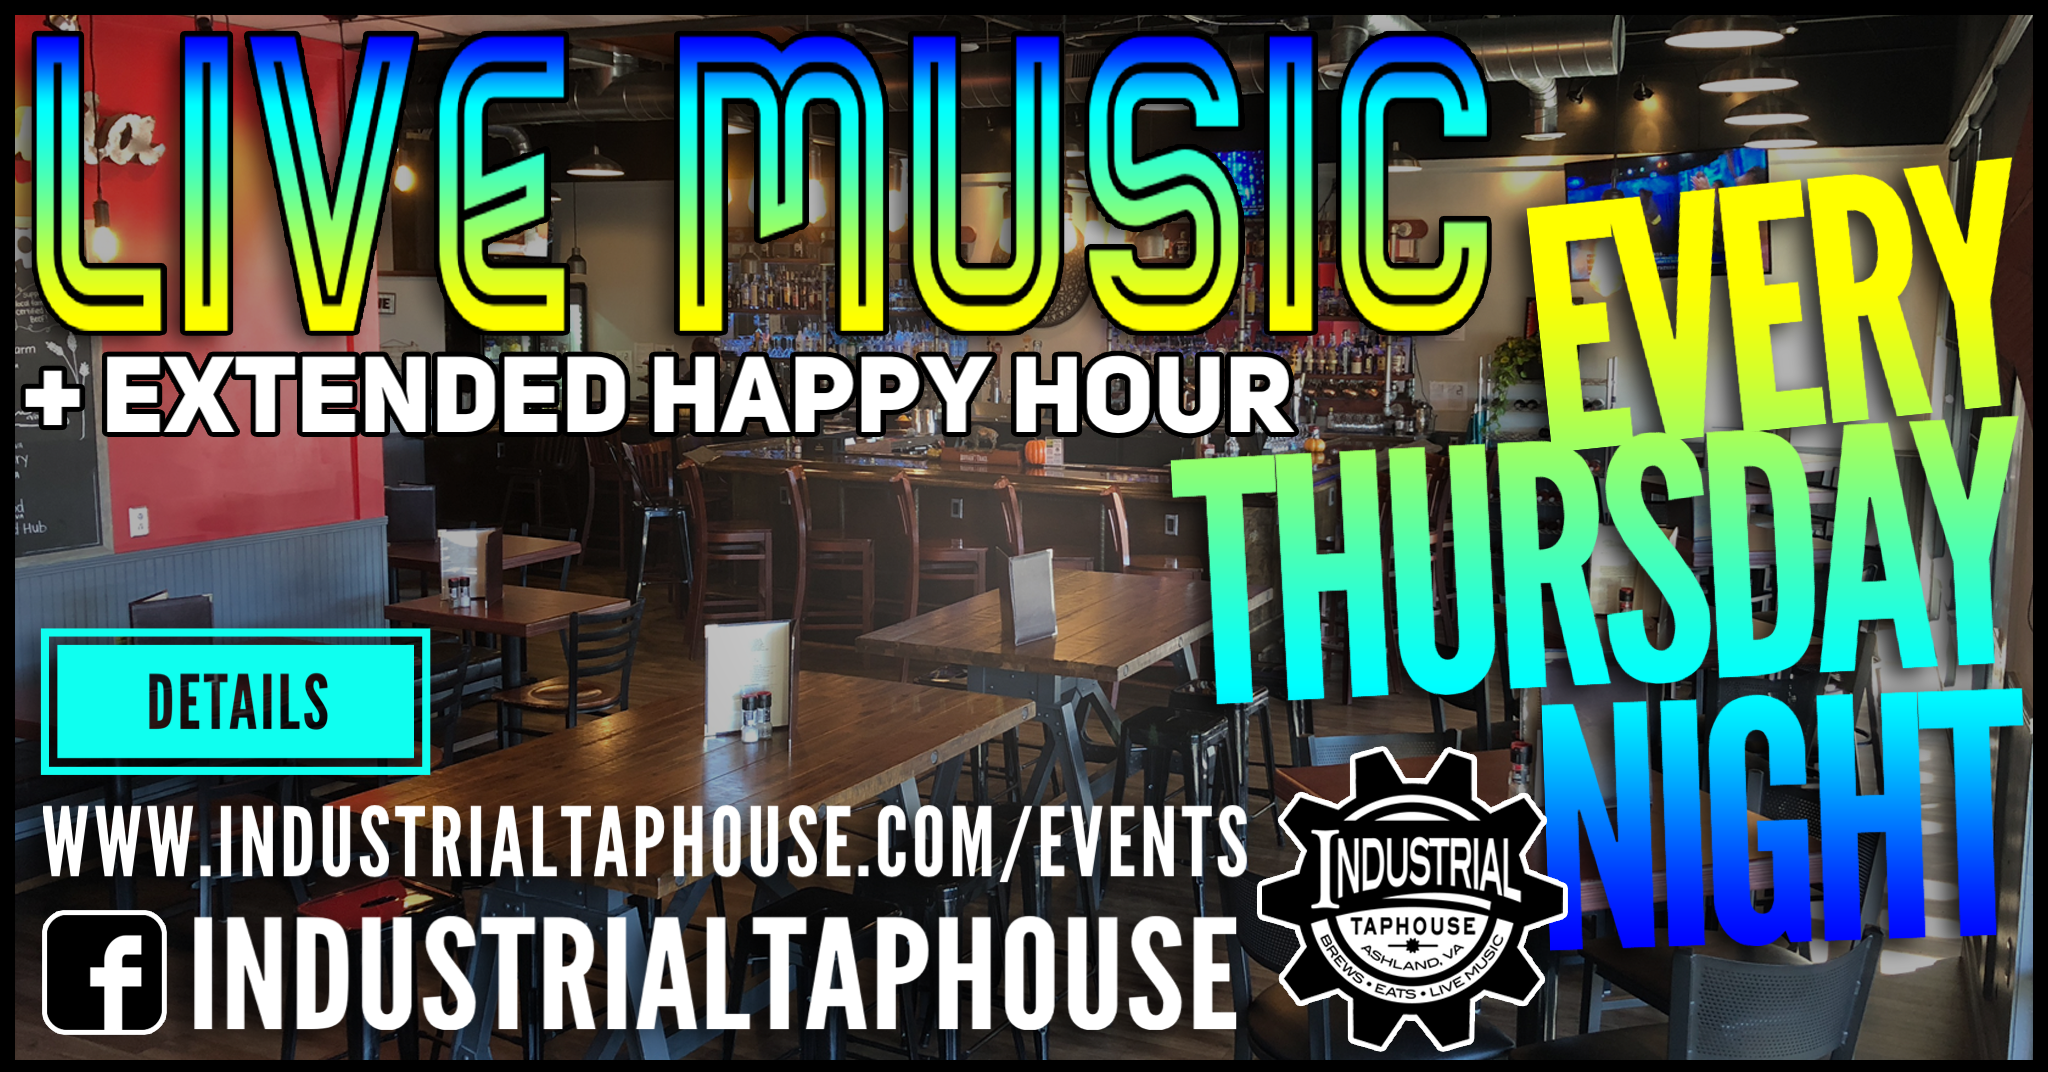 industrial Taphouse, happy hour, best restaurant, restaurants near me, ashland restaurant, kreggers, Martys, sports page, takeout, burgers, beer, craft beer, local beer, wine on tap, specials, lunch, dinner, brunch, live music, bar, best bar, rva, cotu, center of the universe, ashland eats, rva eats, local eats, scratchmade, American restaurant, Mechanicsville restaurant, Atlee, kings charter, cocktails, pork rinds, dog friendly dining, patio dining, catering, caterer, banquet room, Virginia restaurants, dessert, dive bar, restaurants with outdoor seating, Taphouse Tuesdays,eat catering, ashland va caterer, Richmond caterer, rva caterer, late night bar, eat it, childrens menu, kid friendly